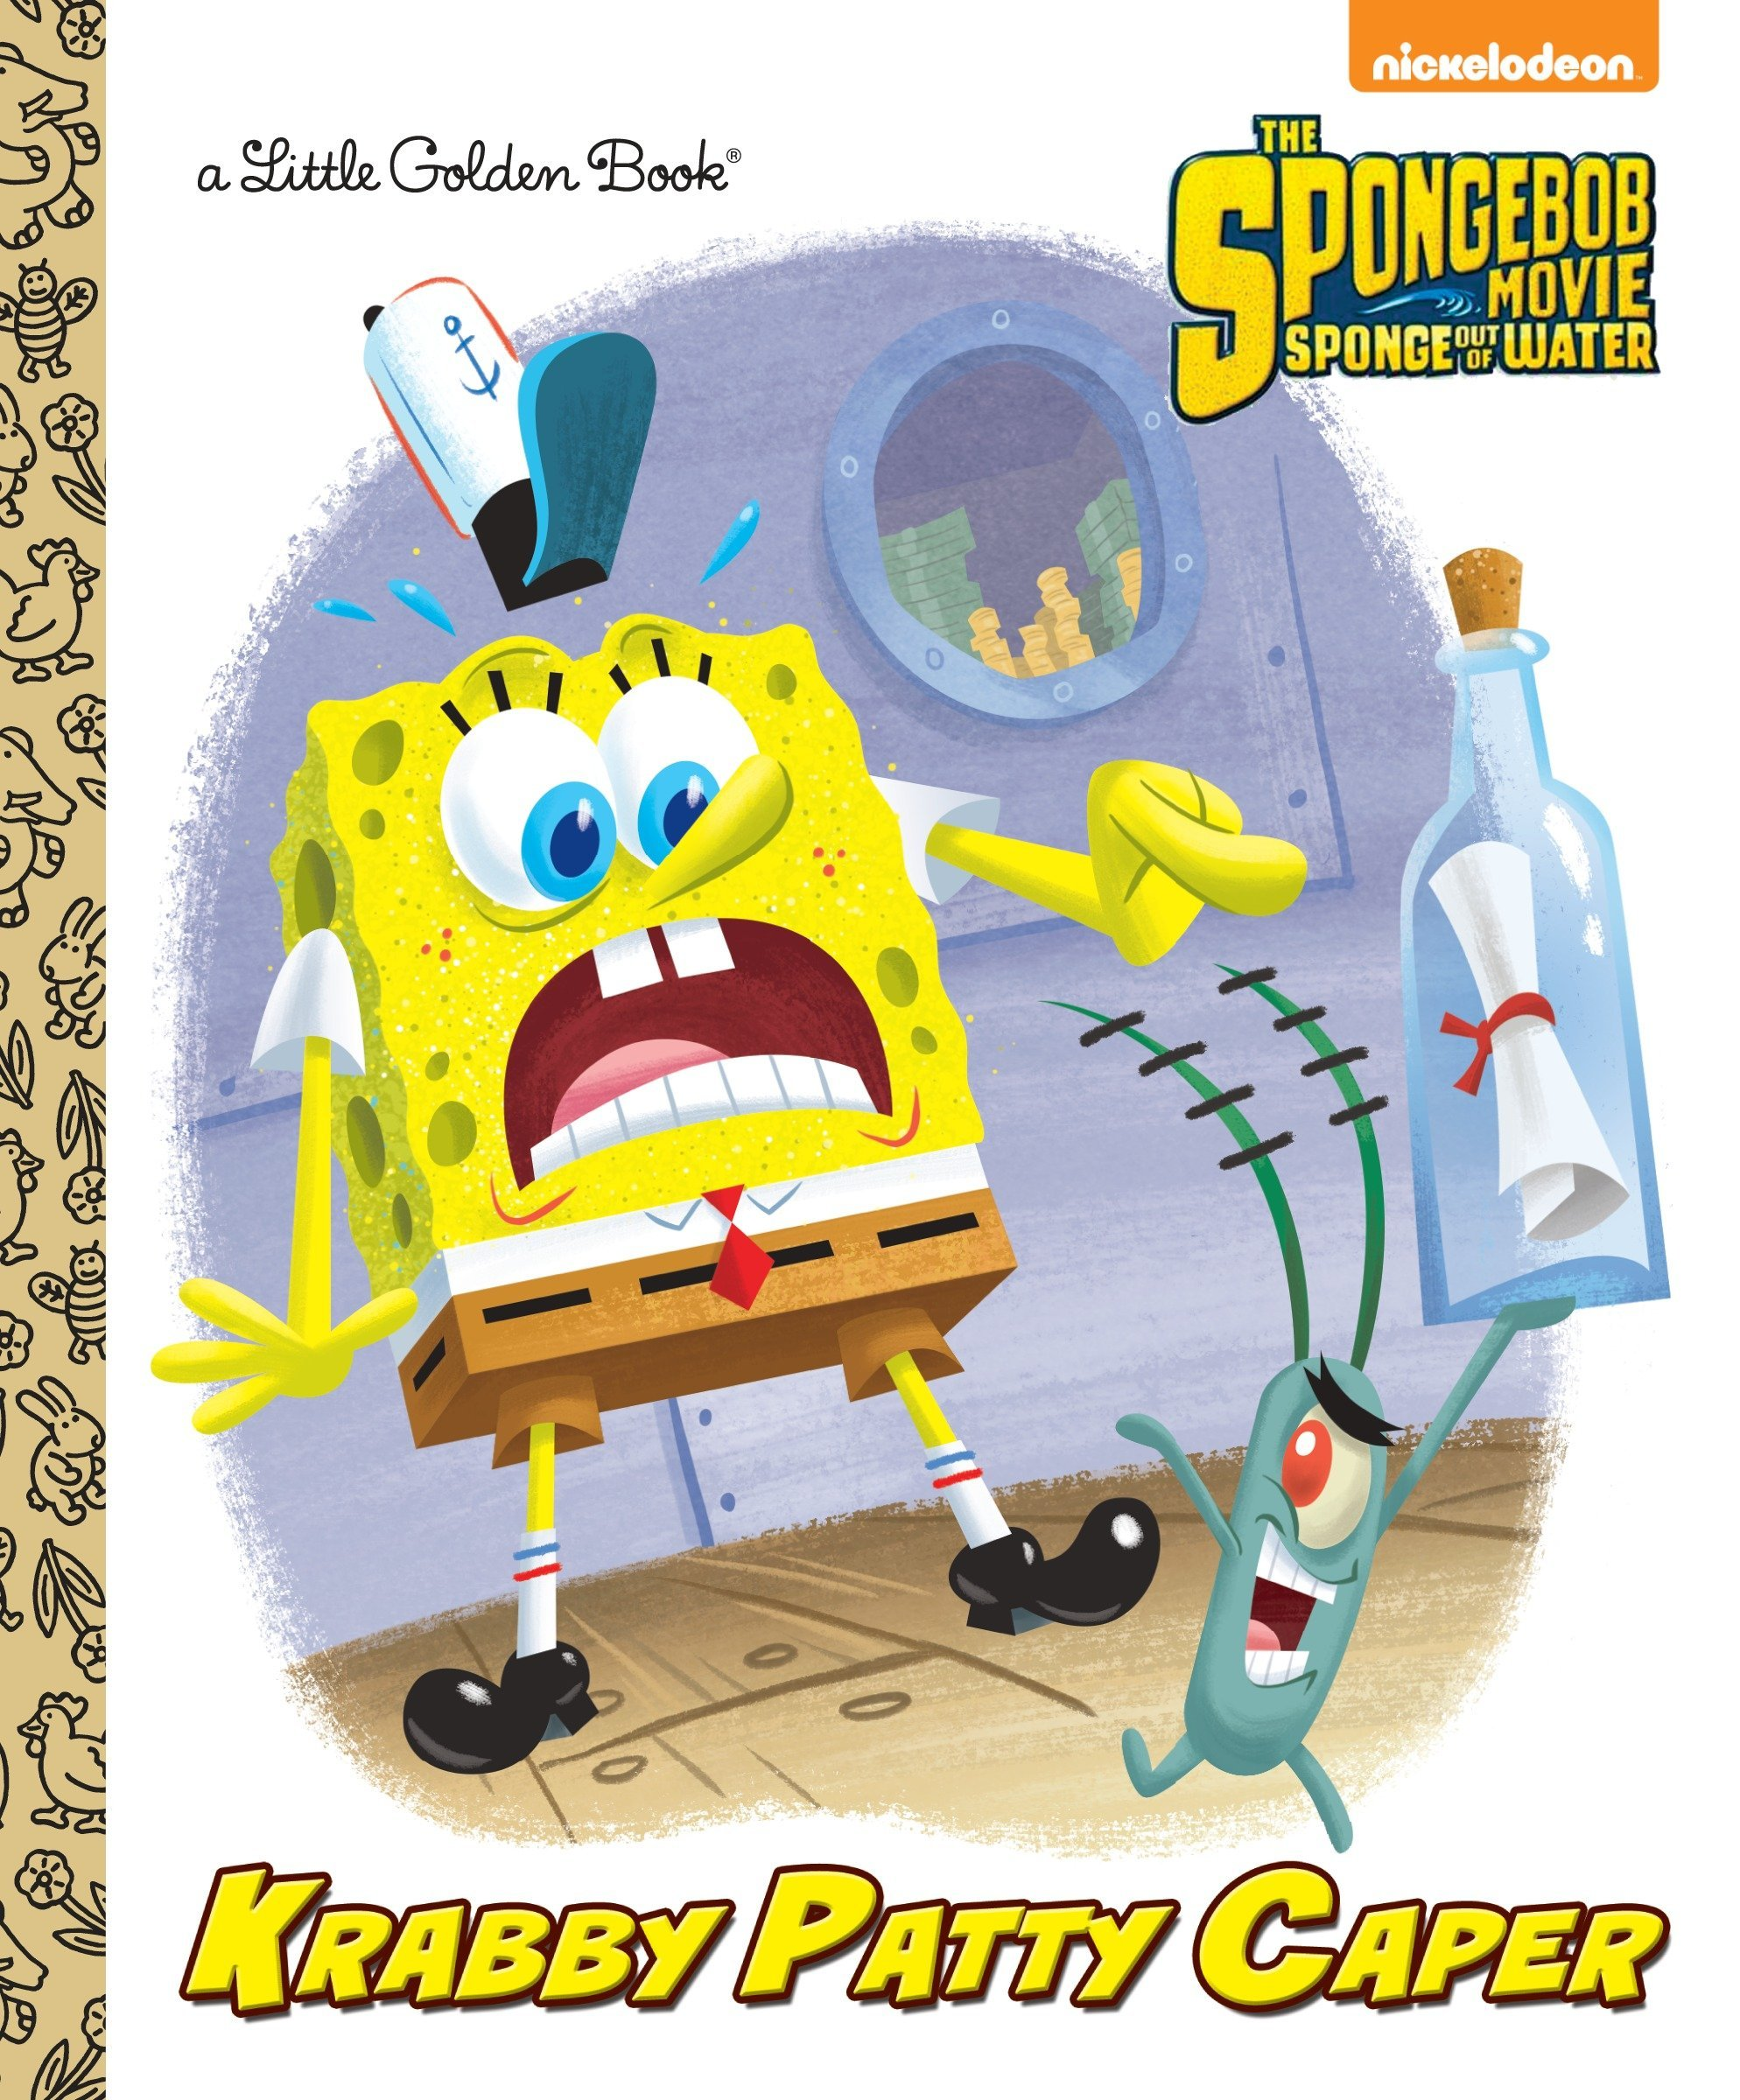 Krabby Patty Caper SpongeBob SquarePants Little Golden Book